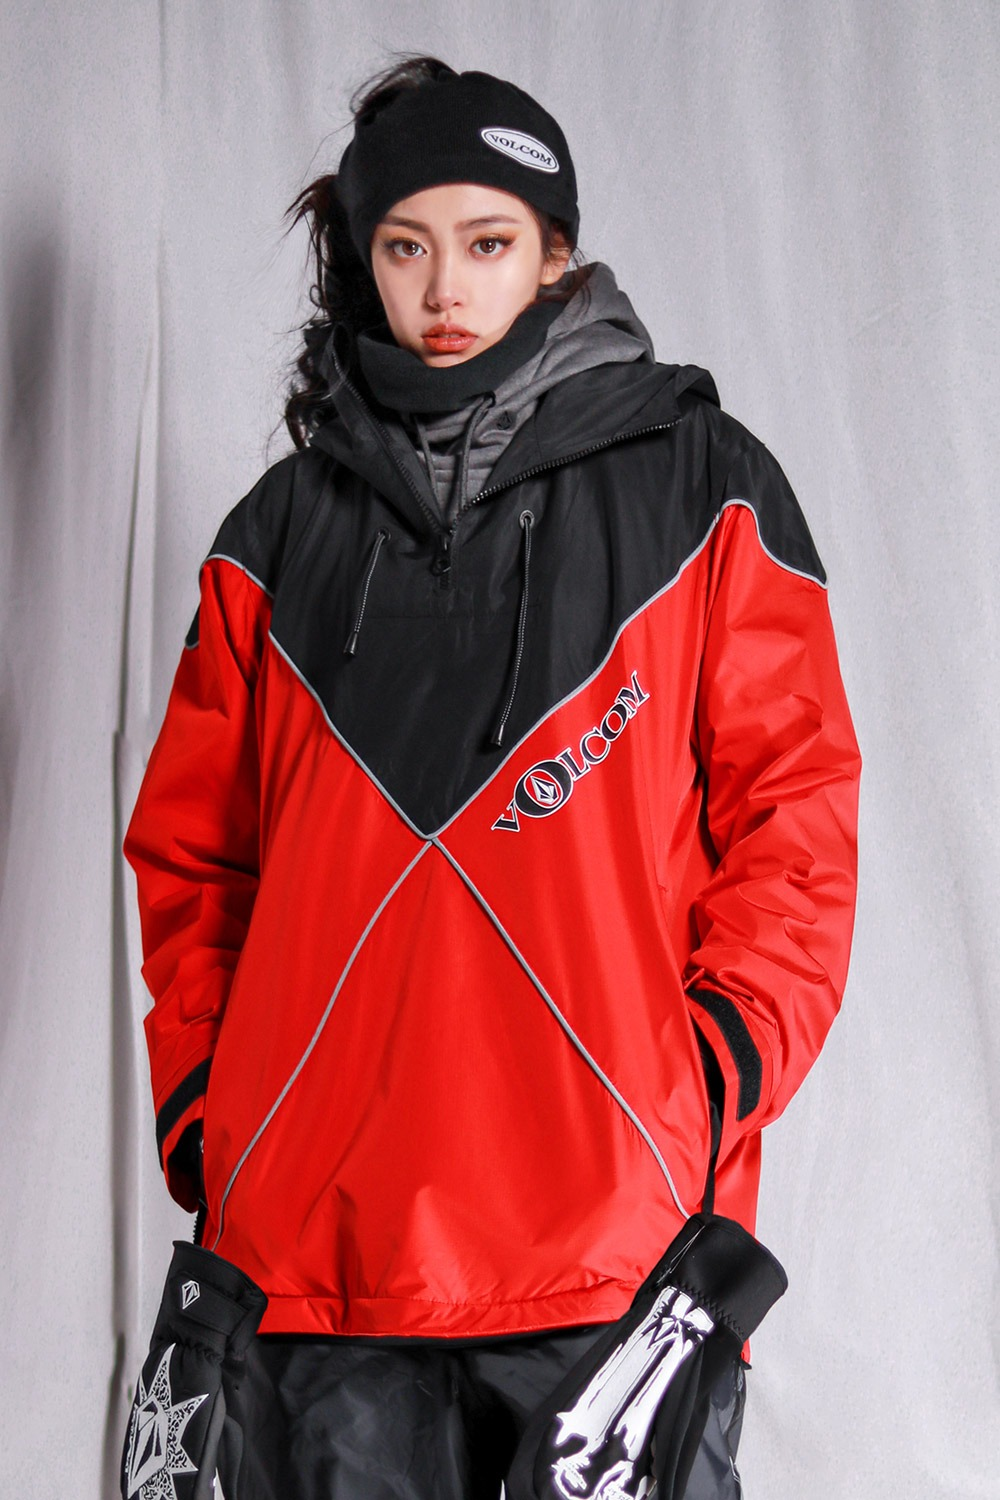 2021 볼컴 JP x WP 자켓 VOLCOM JP X WP JACKET_RED (RED)(G1502100-RED)_포인트스카치리플렉터_A7V5085RE